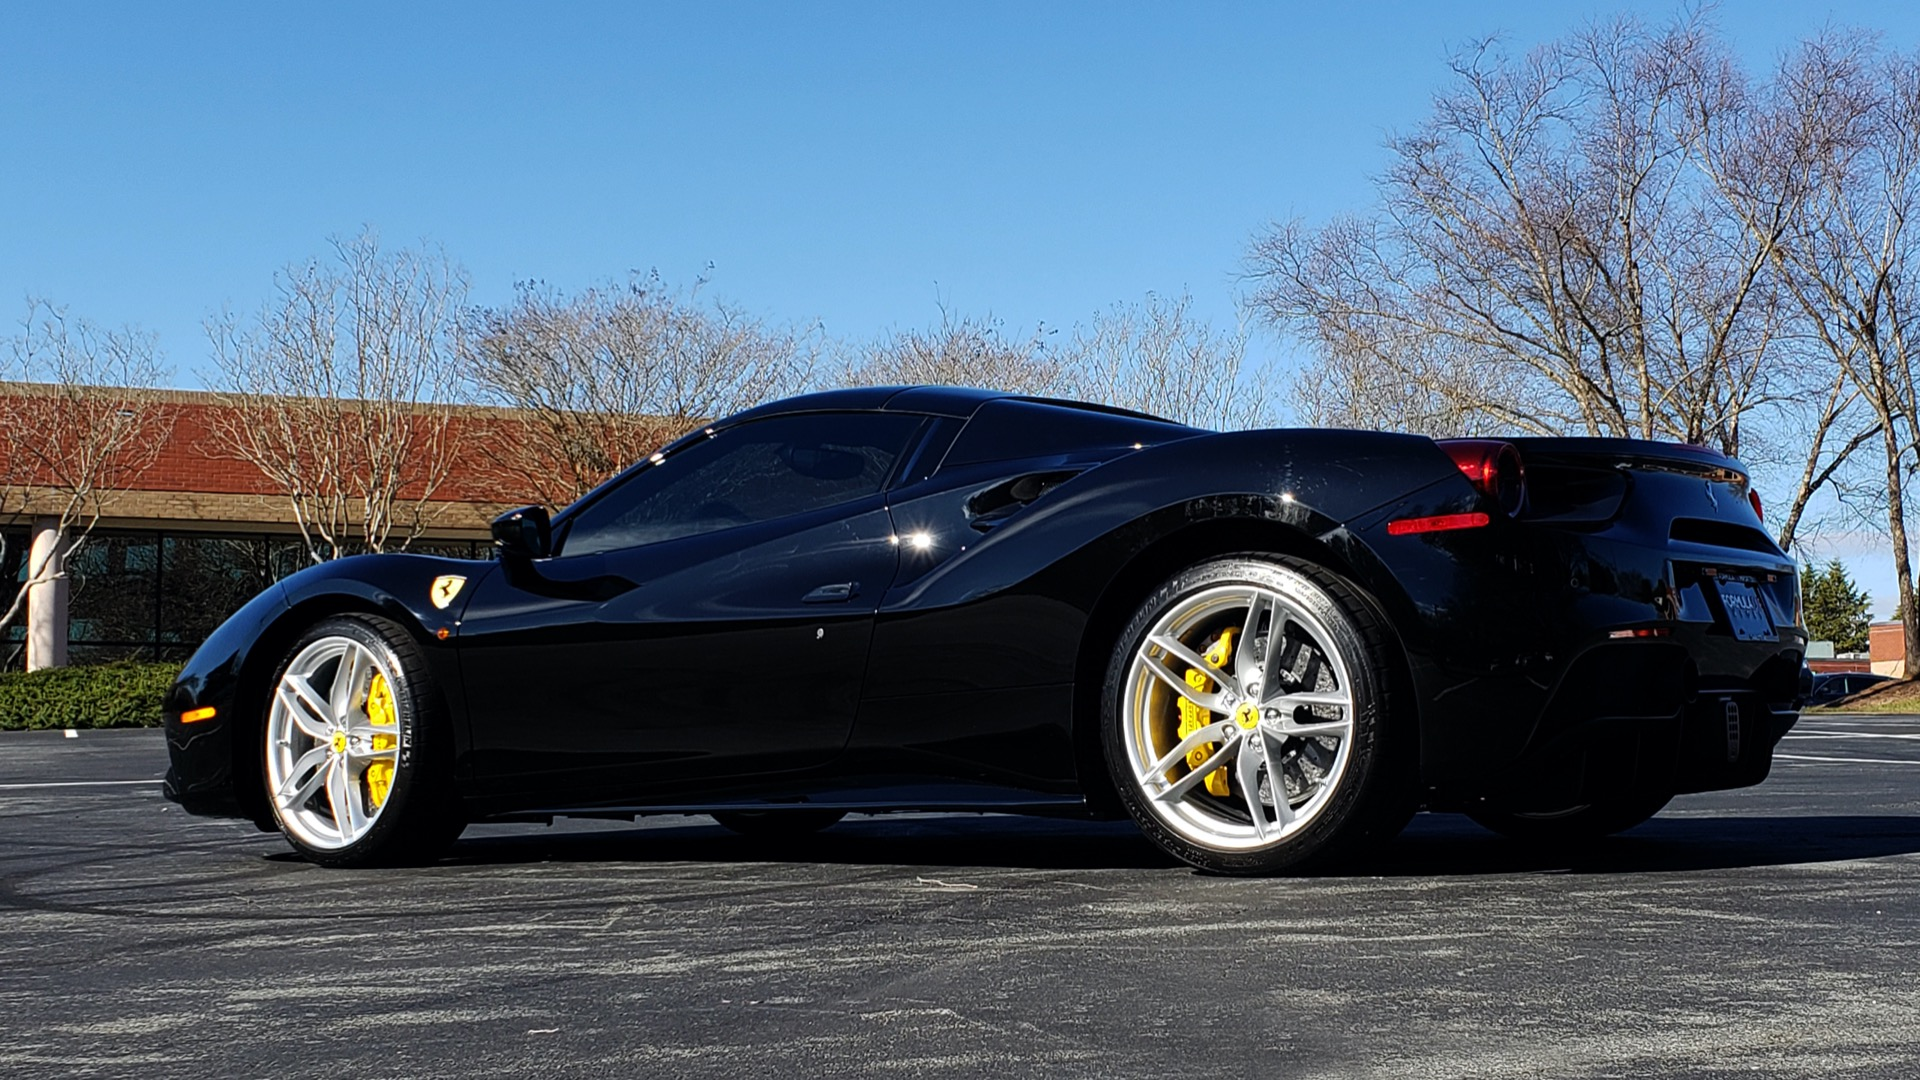 Used 2017 Ferrari 488 Spider SUSP LFT / JBL SND / SPRT EXH / F1 TRANS for sale $315,000 at Formula Imports in Charlotte NC 28227 7